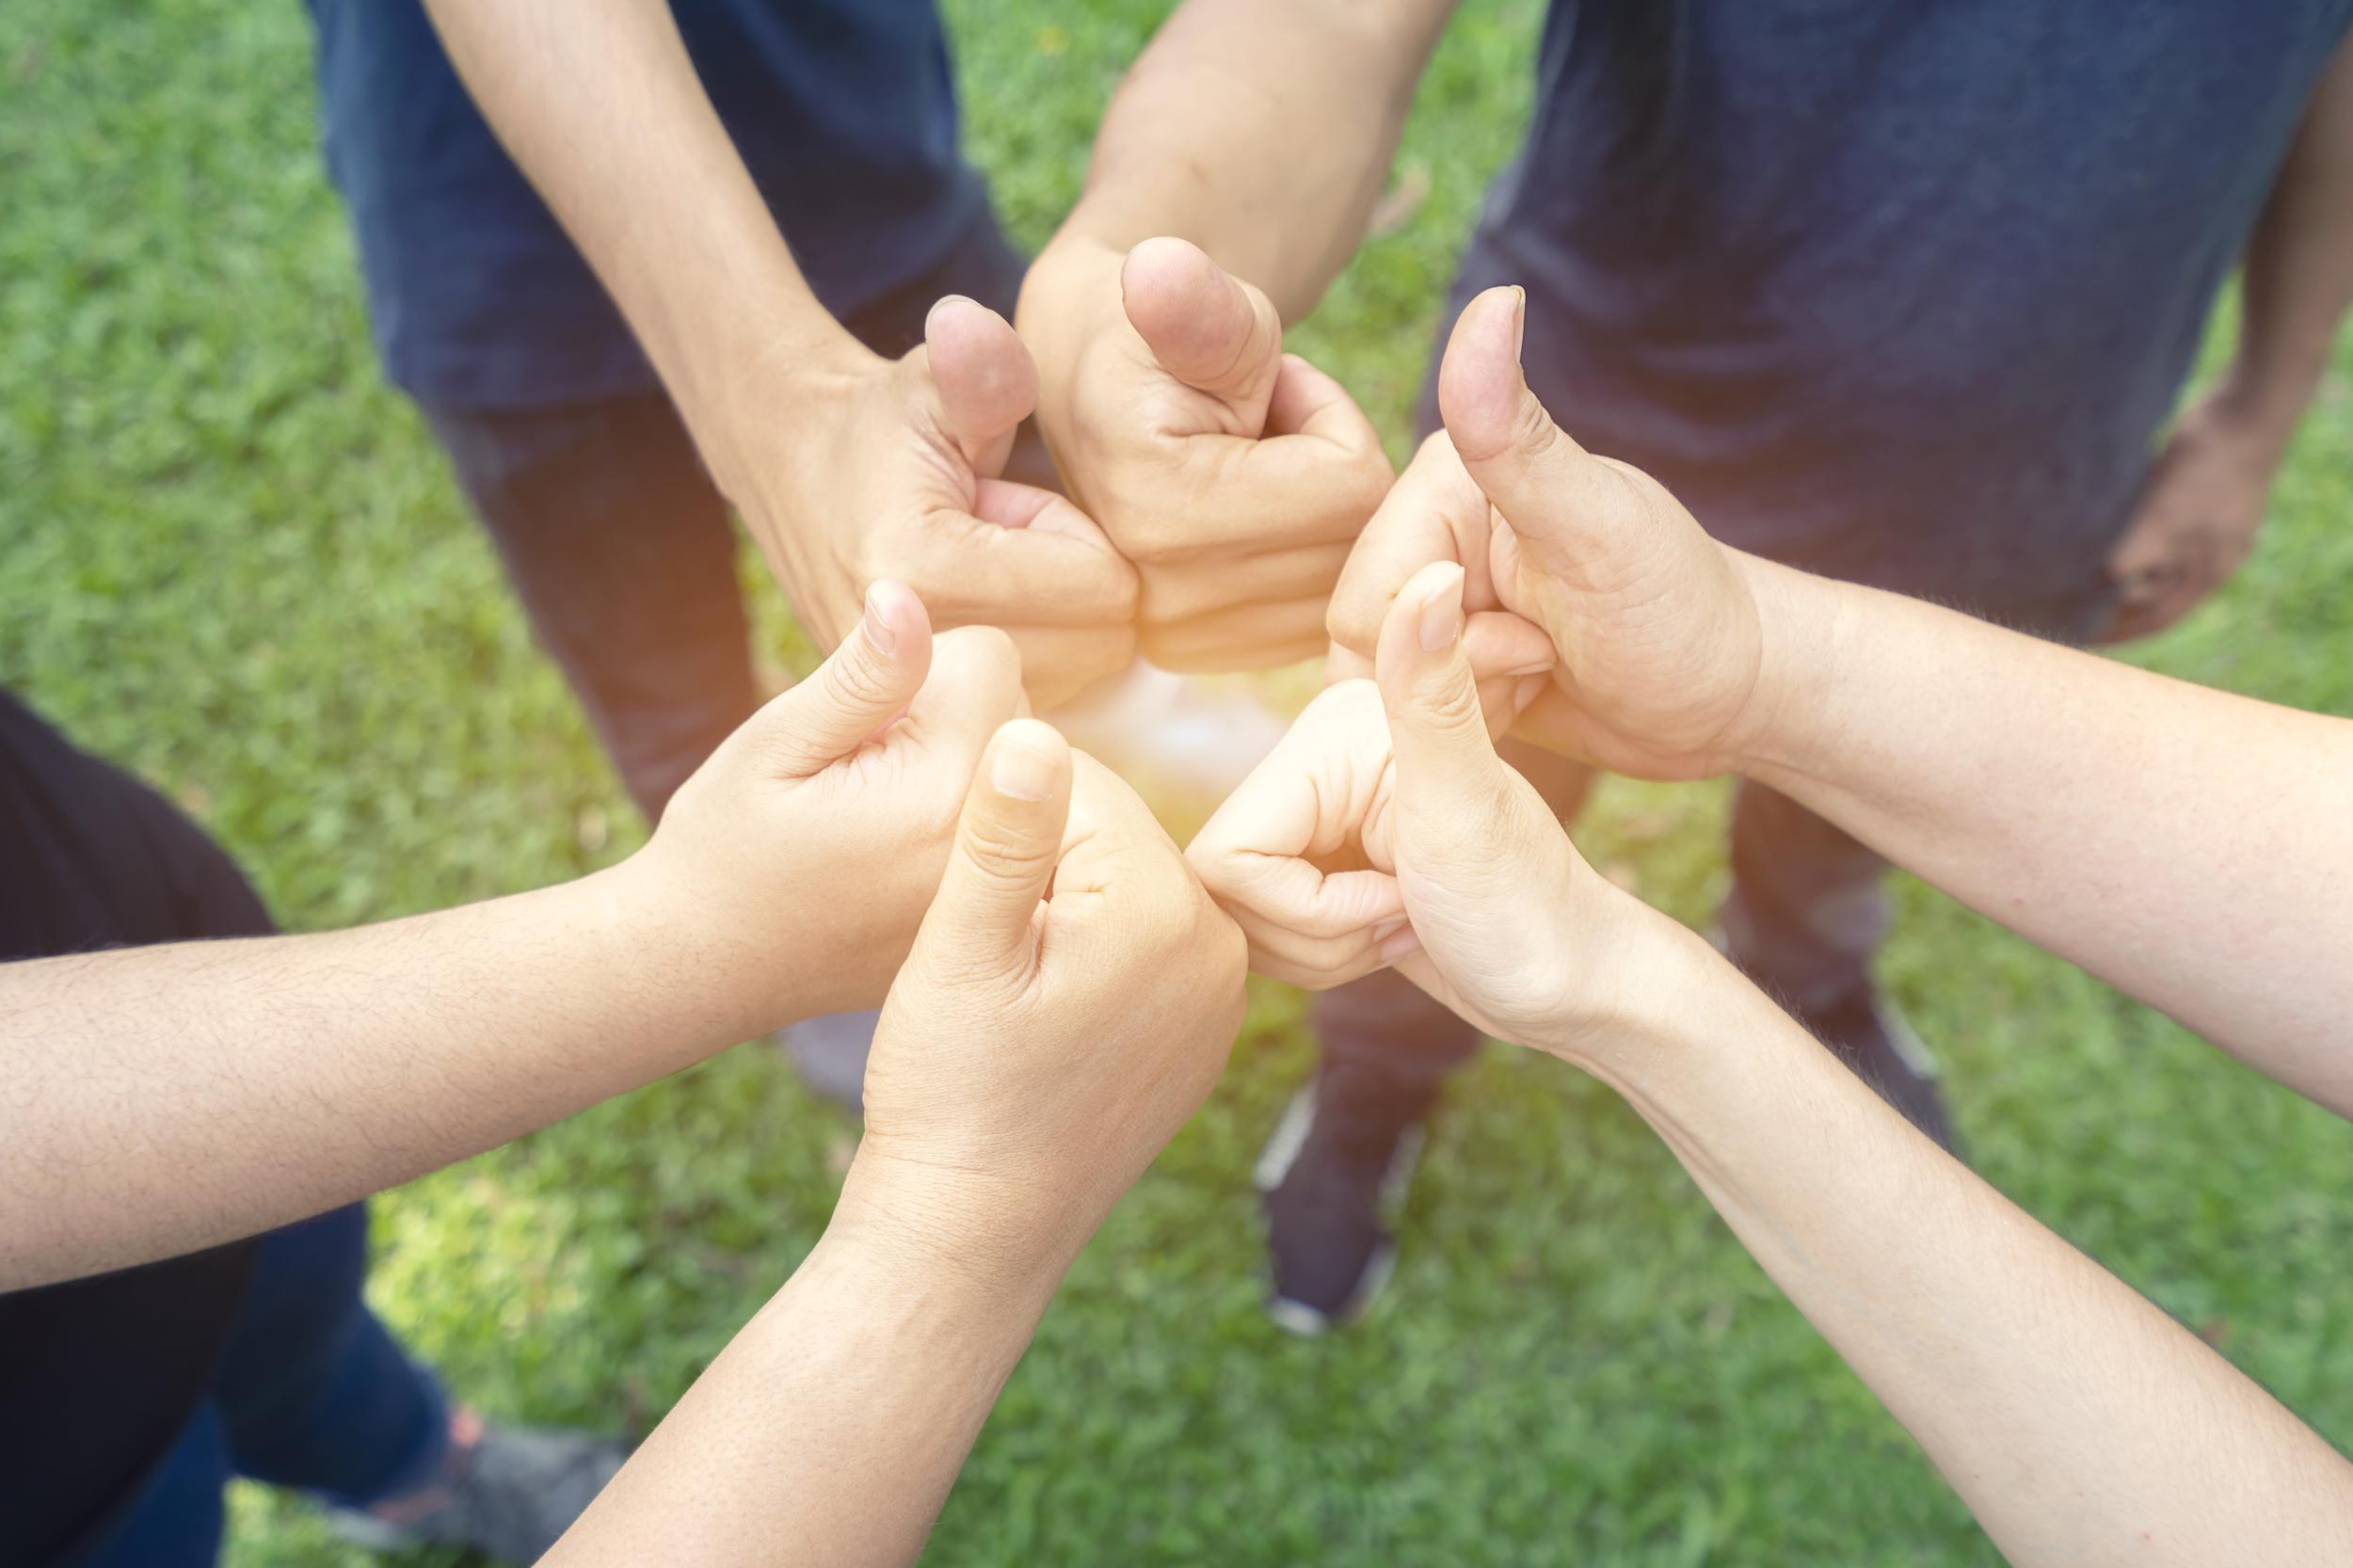 Teamwork togetherness collaboration concept, Group of people giving a thumbs up gesture of approval an success with their hands raised against huddle together, achieve their ultimate goal.